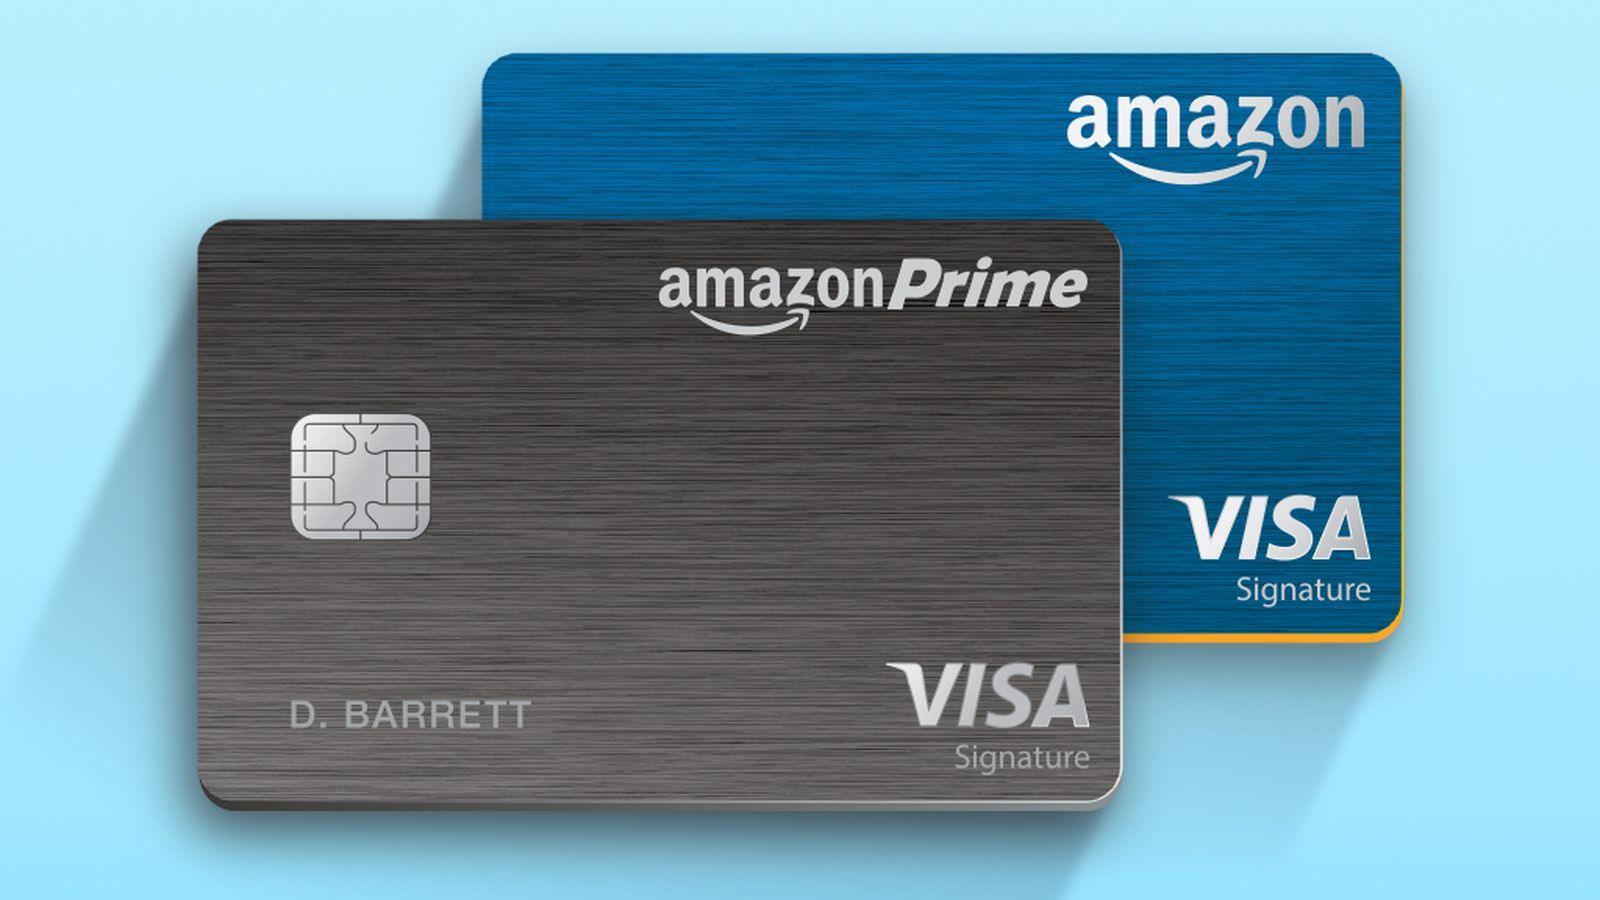 Amazon Upgrades Its Prime Credit Card With 5 Percent Cashback